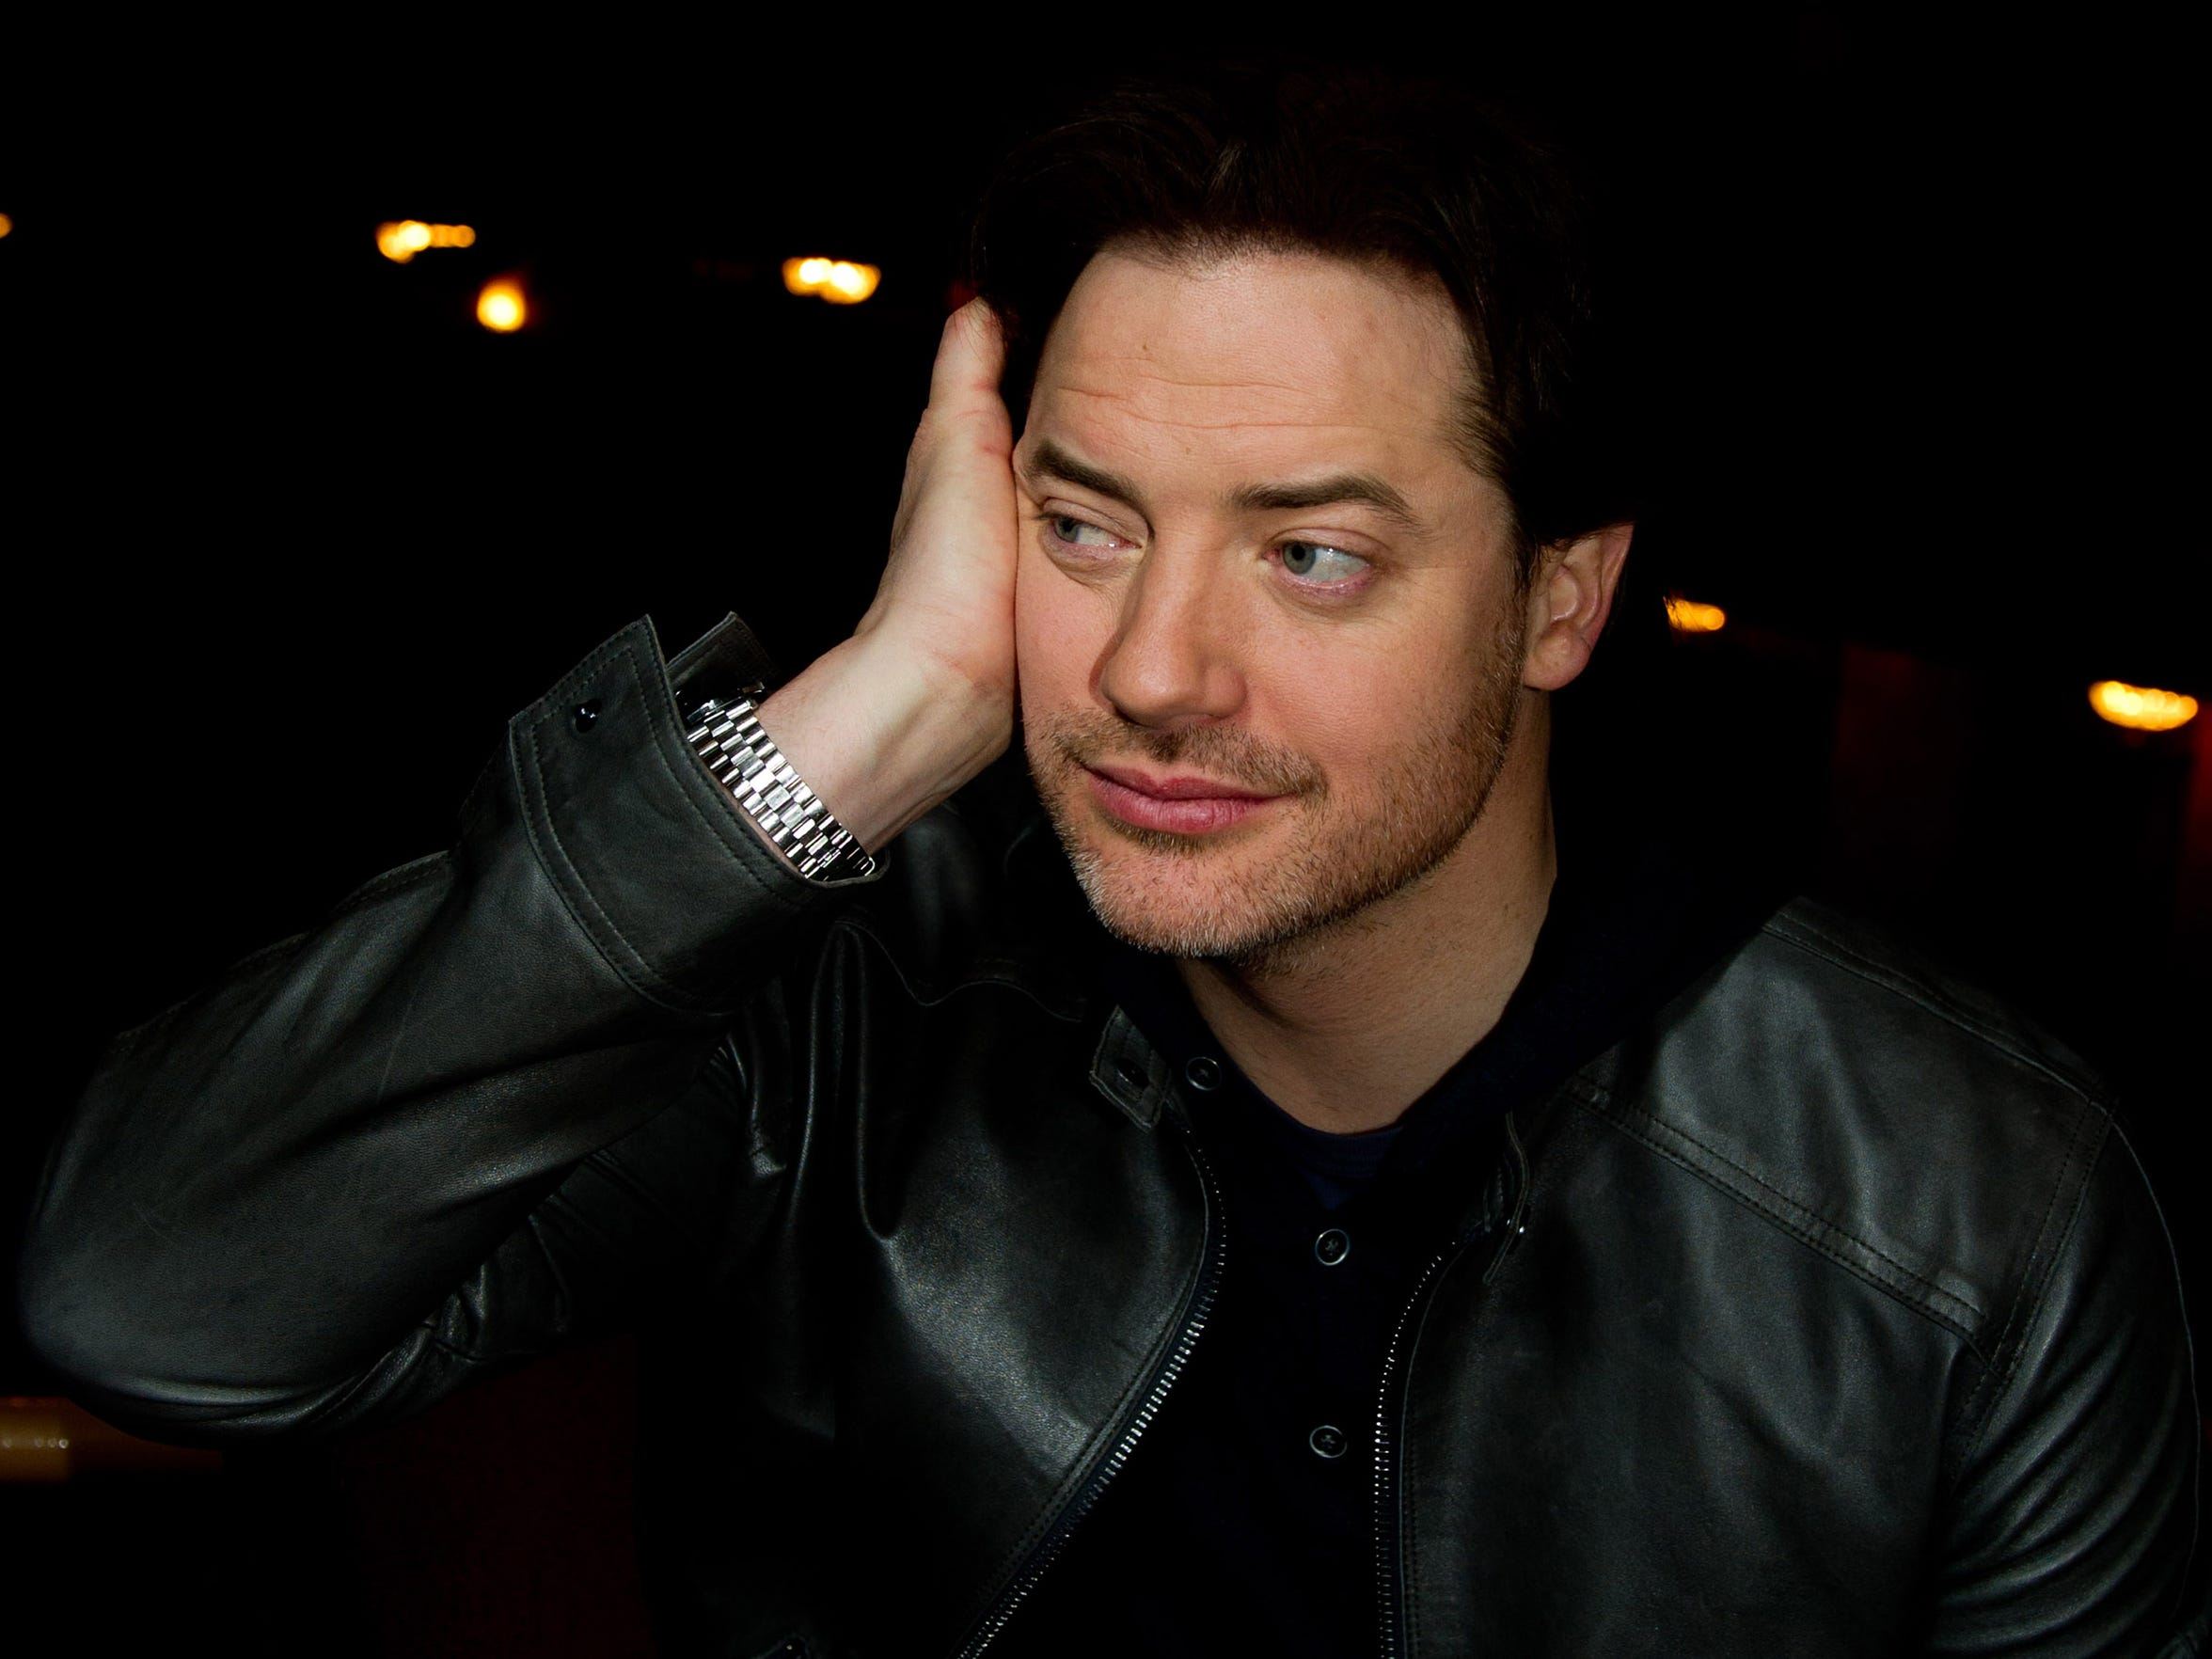 Actor Brendan Fraser poses for a portrait at the Ethel